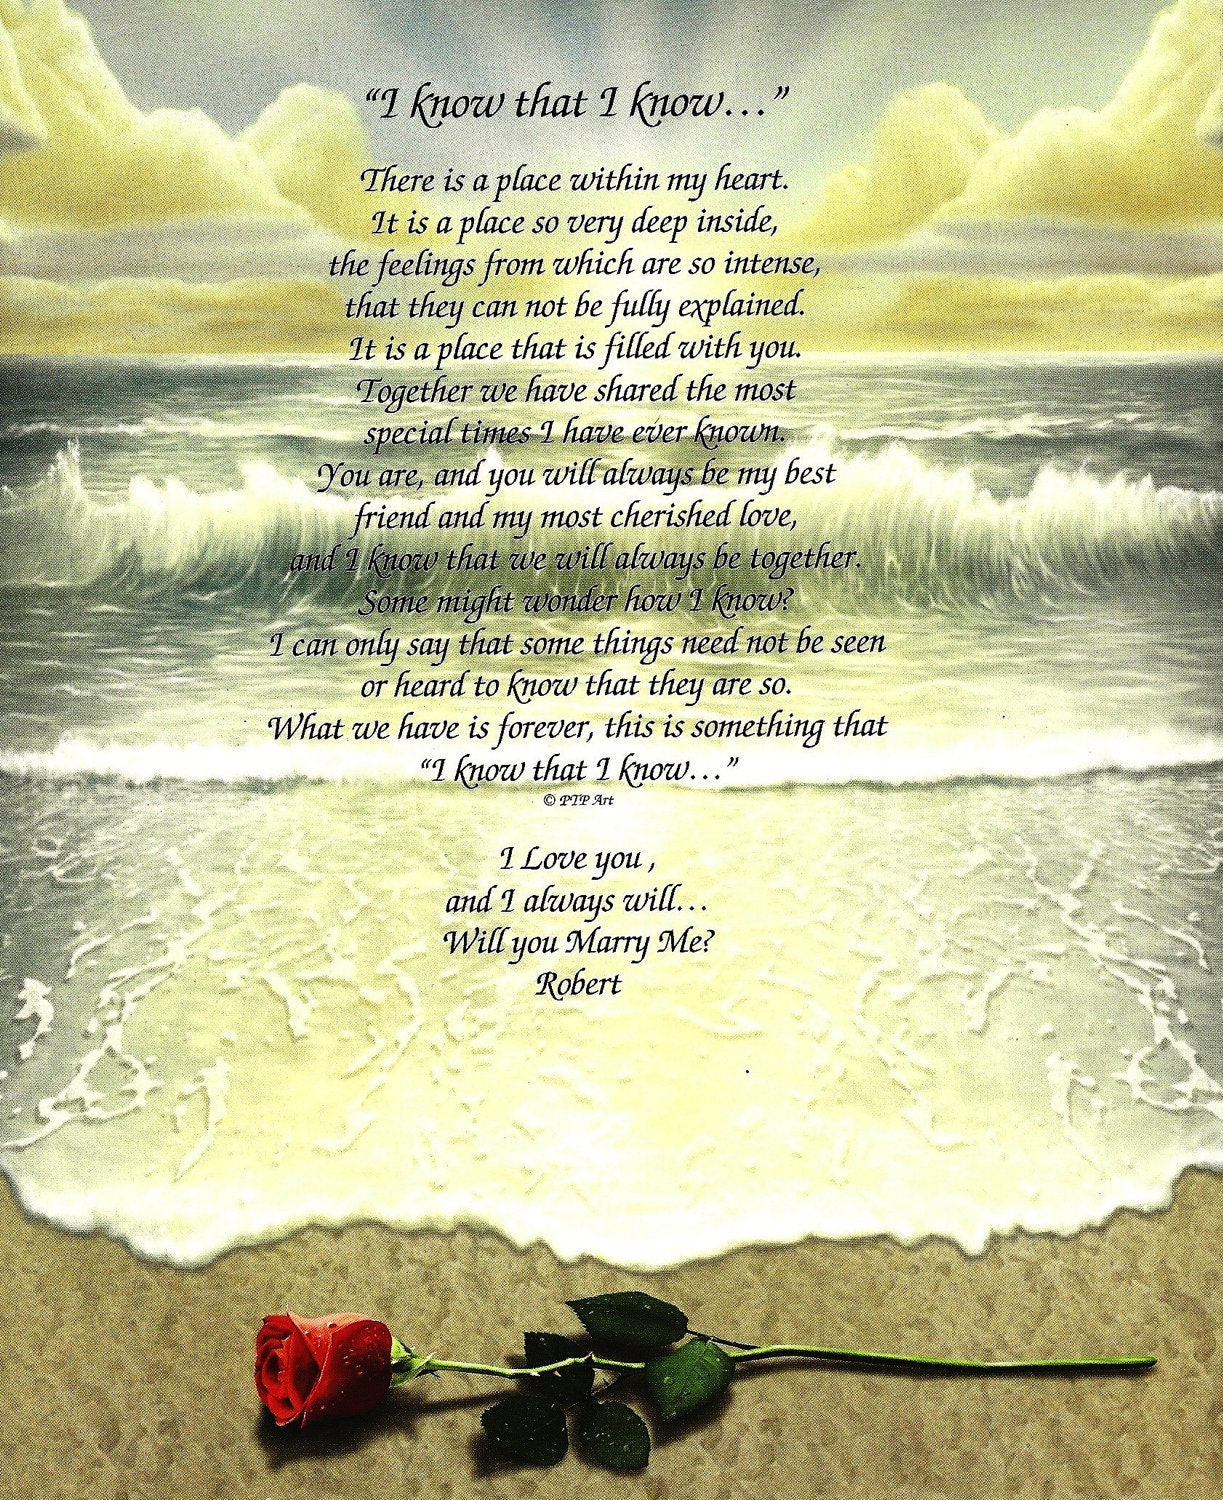 Items Similar To Marriage Proposal Poem On Beach Design On Etsy